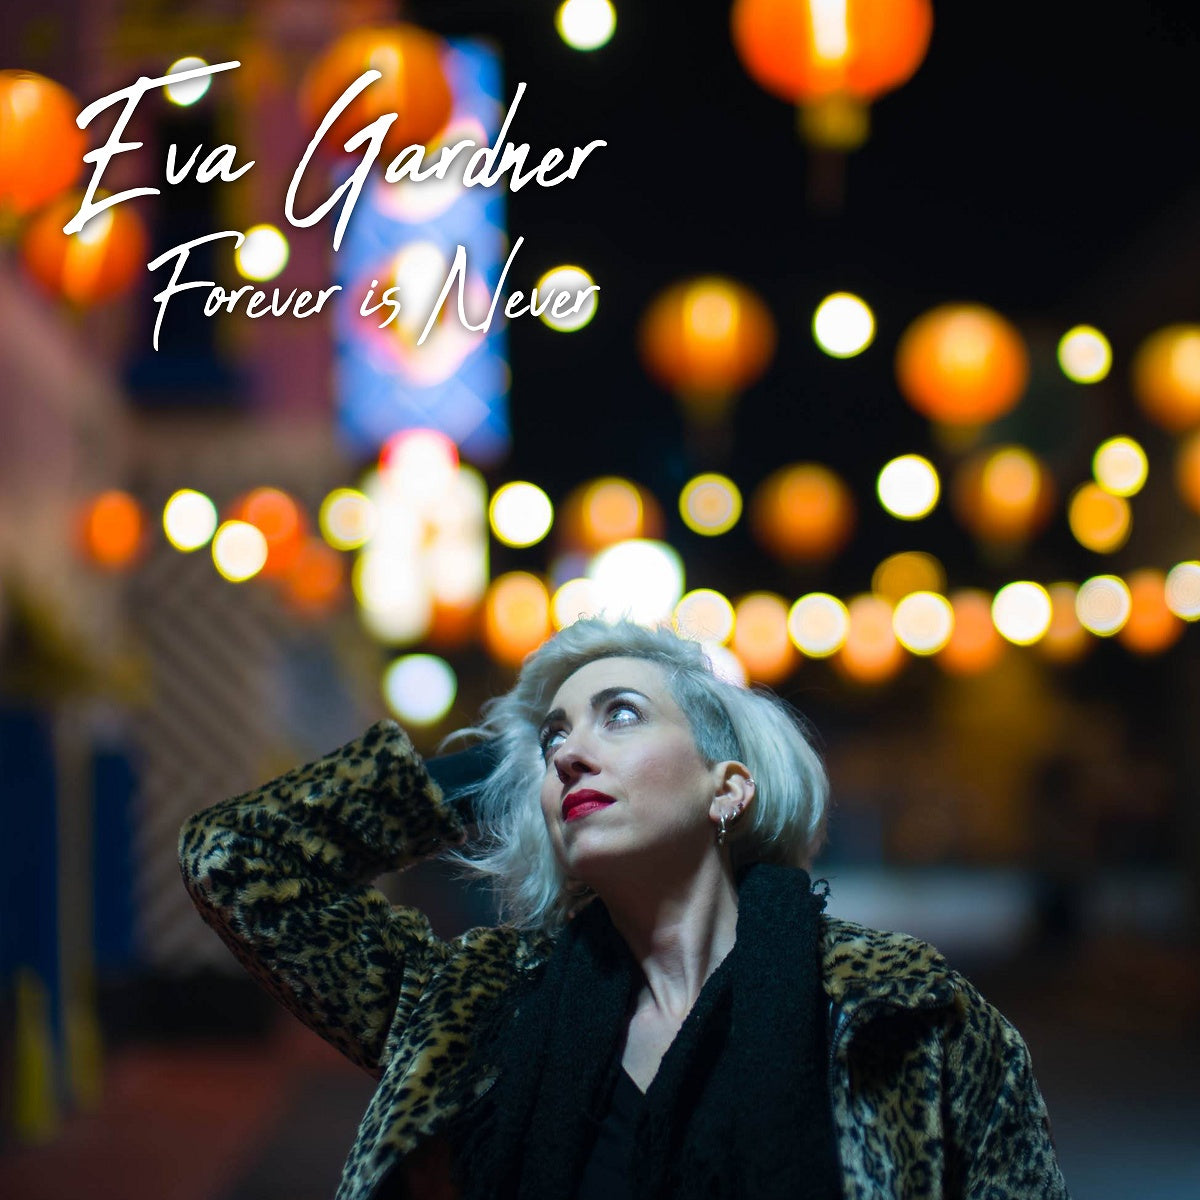 Eva Gardner – 'Forever Is Never'